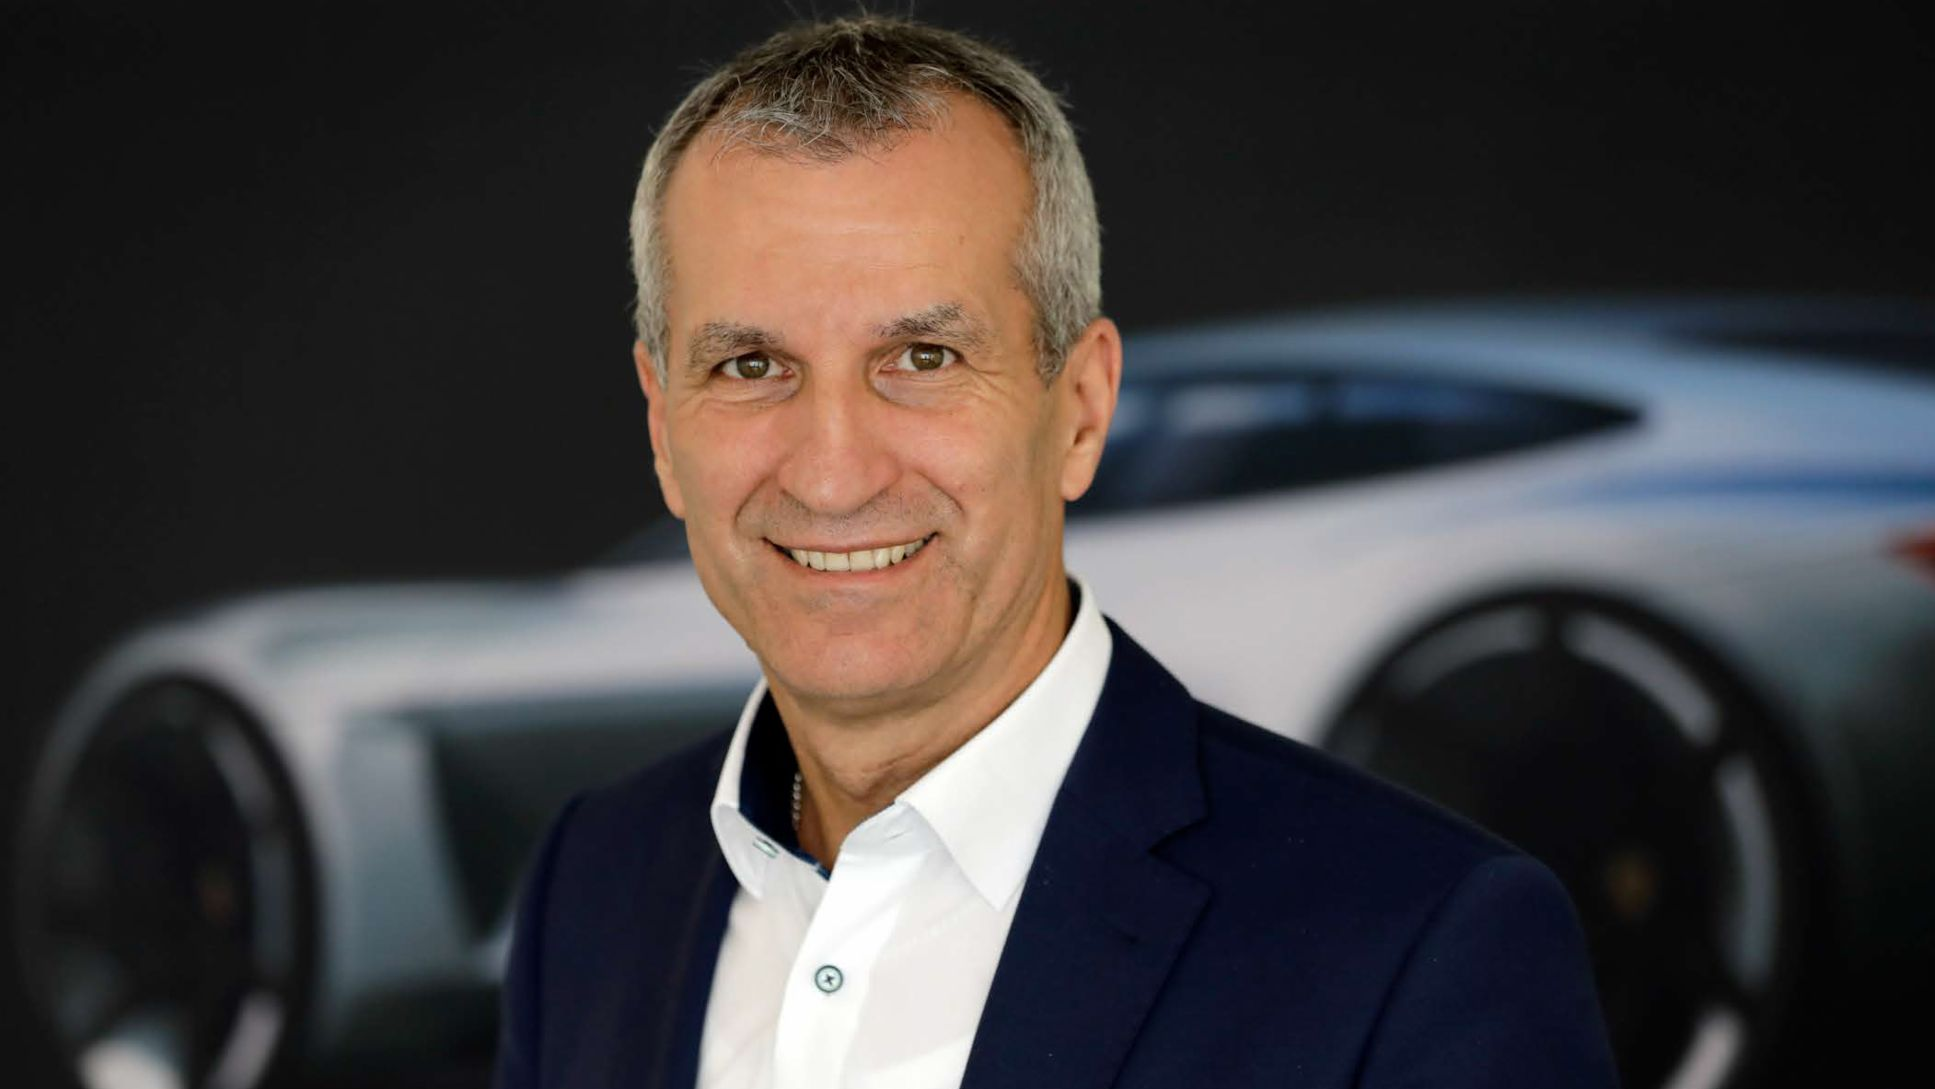 Albrecht Reimold, Production and Logistics Board Member at Porsche AG, 2020, Porsche AG